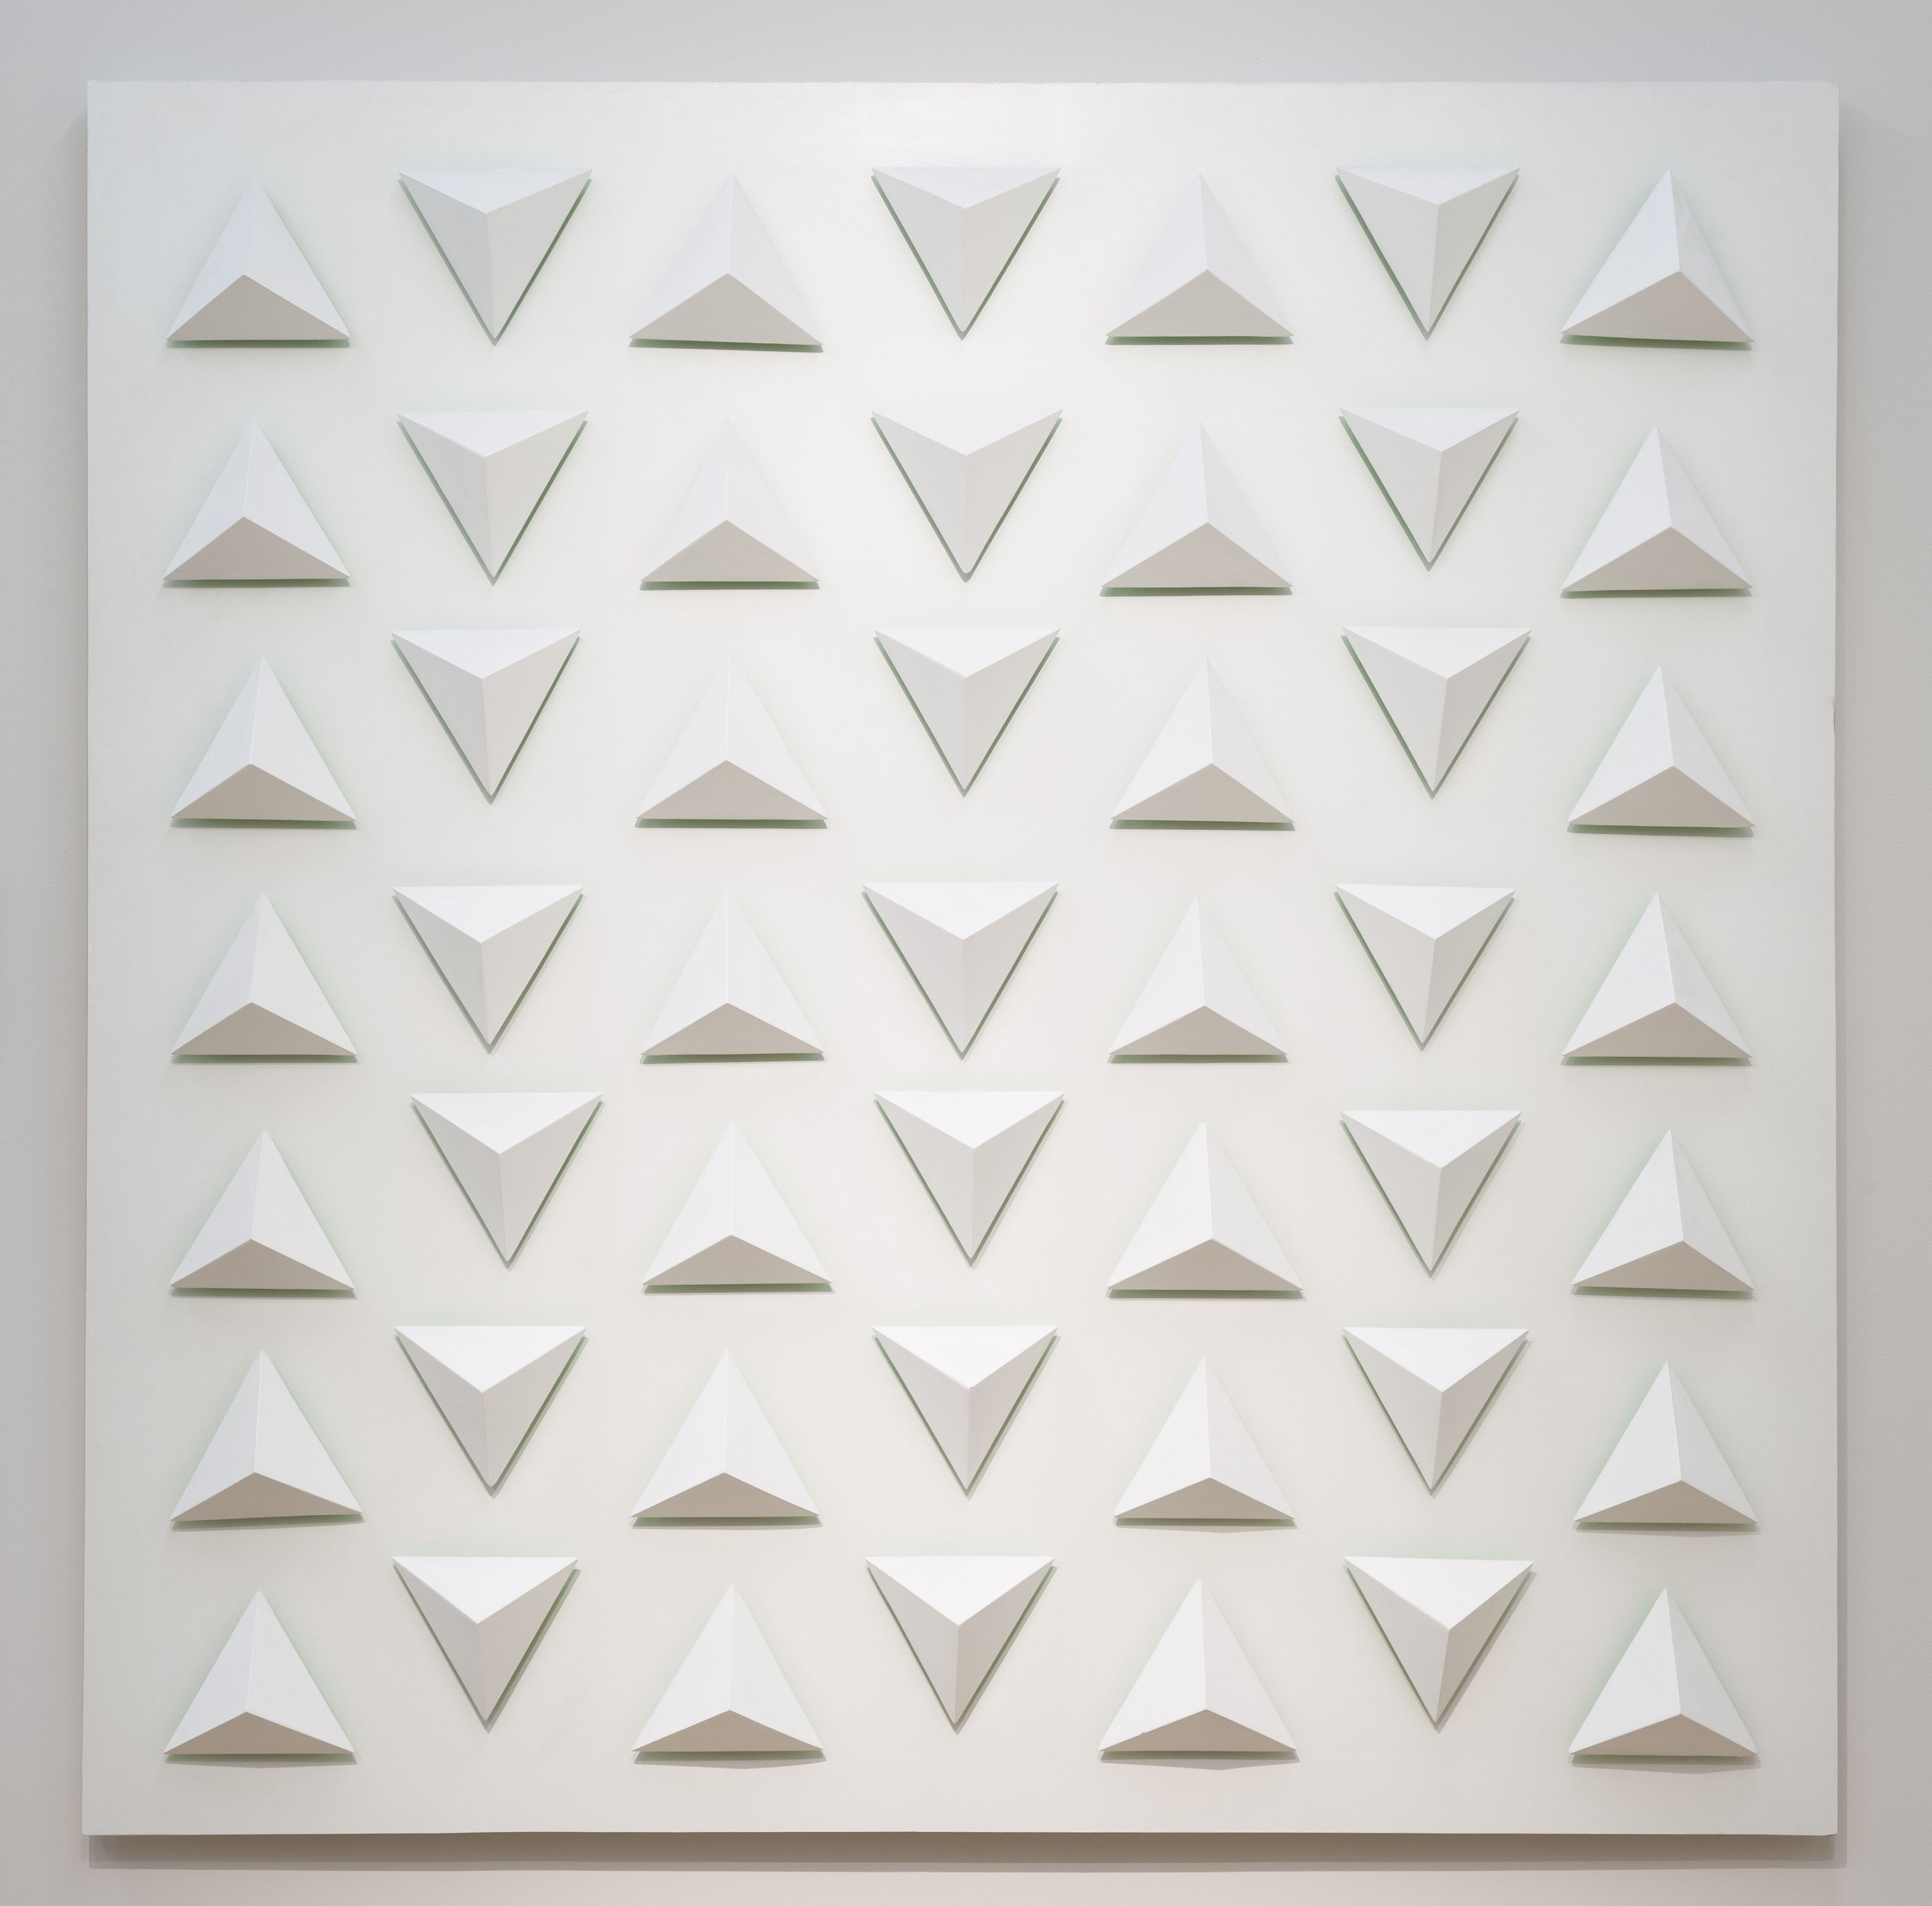 Luis Tomasello, Atmosphère chromoplastique N° 1029, 2013. Painting, acrylic and wood, 53 1/4 x 53 1/4 in.